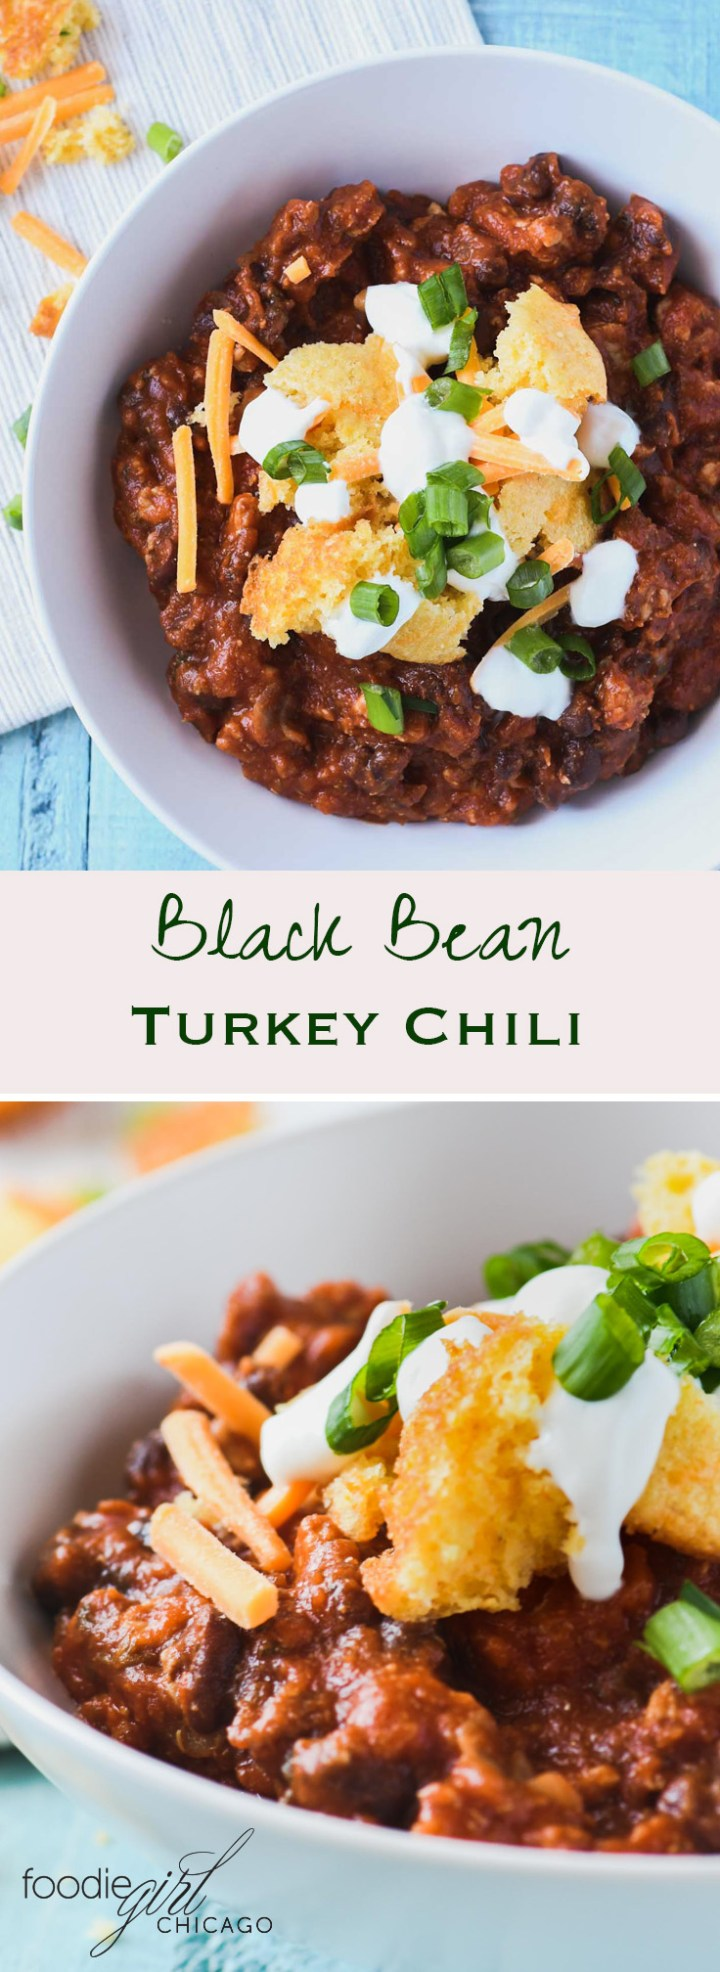 This healthy turkey chili recipe is made with black beans and Amber beer then topped with jalapeño cheddar cornbread bites for a tasty weeknight meal on a cold winter evening!